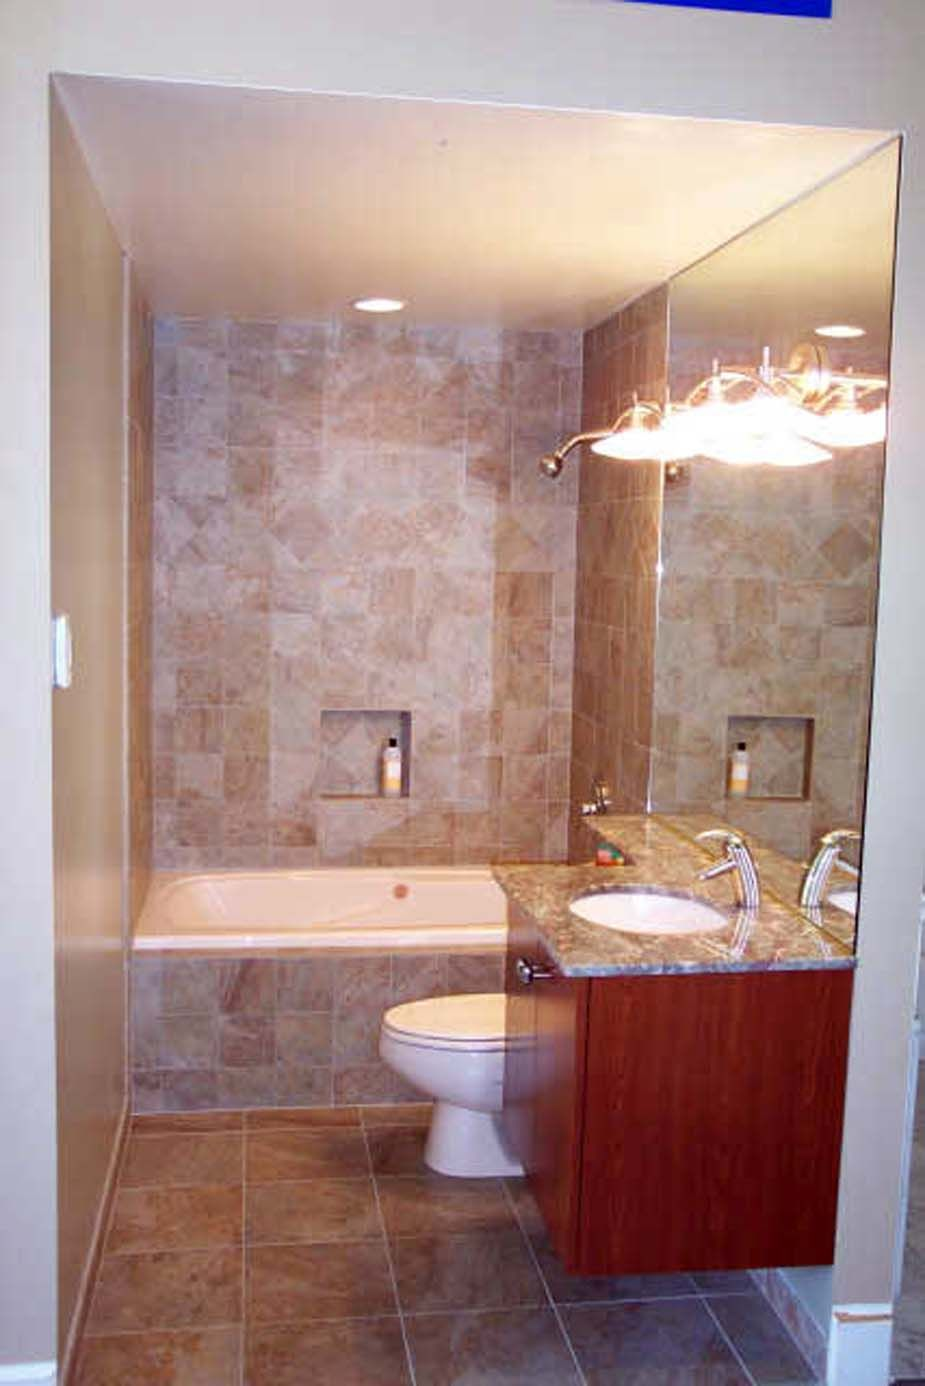 Enticing small bathroom idea with floating wood vanity for Small marble bathroom